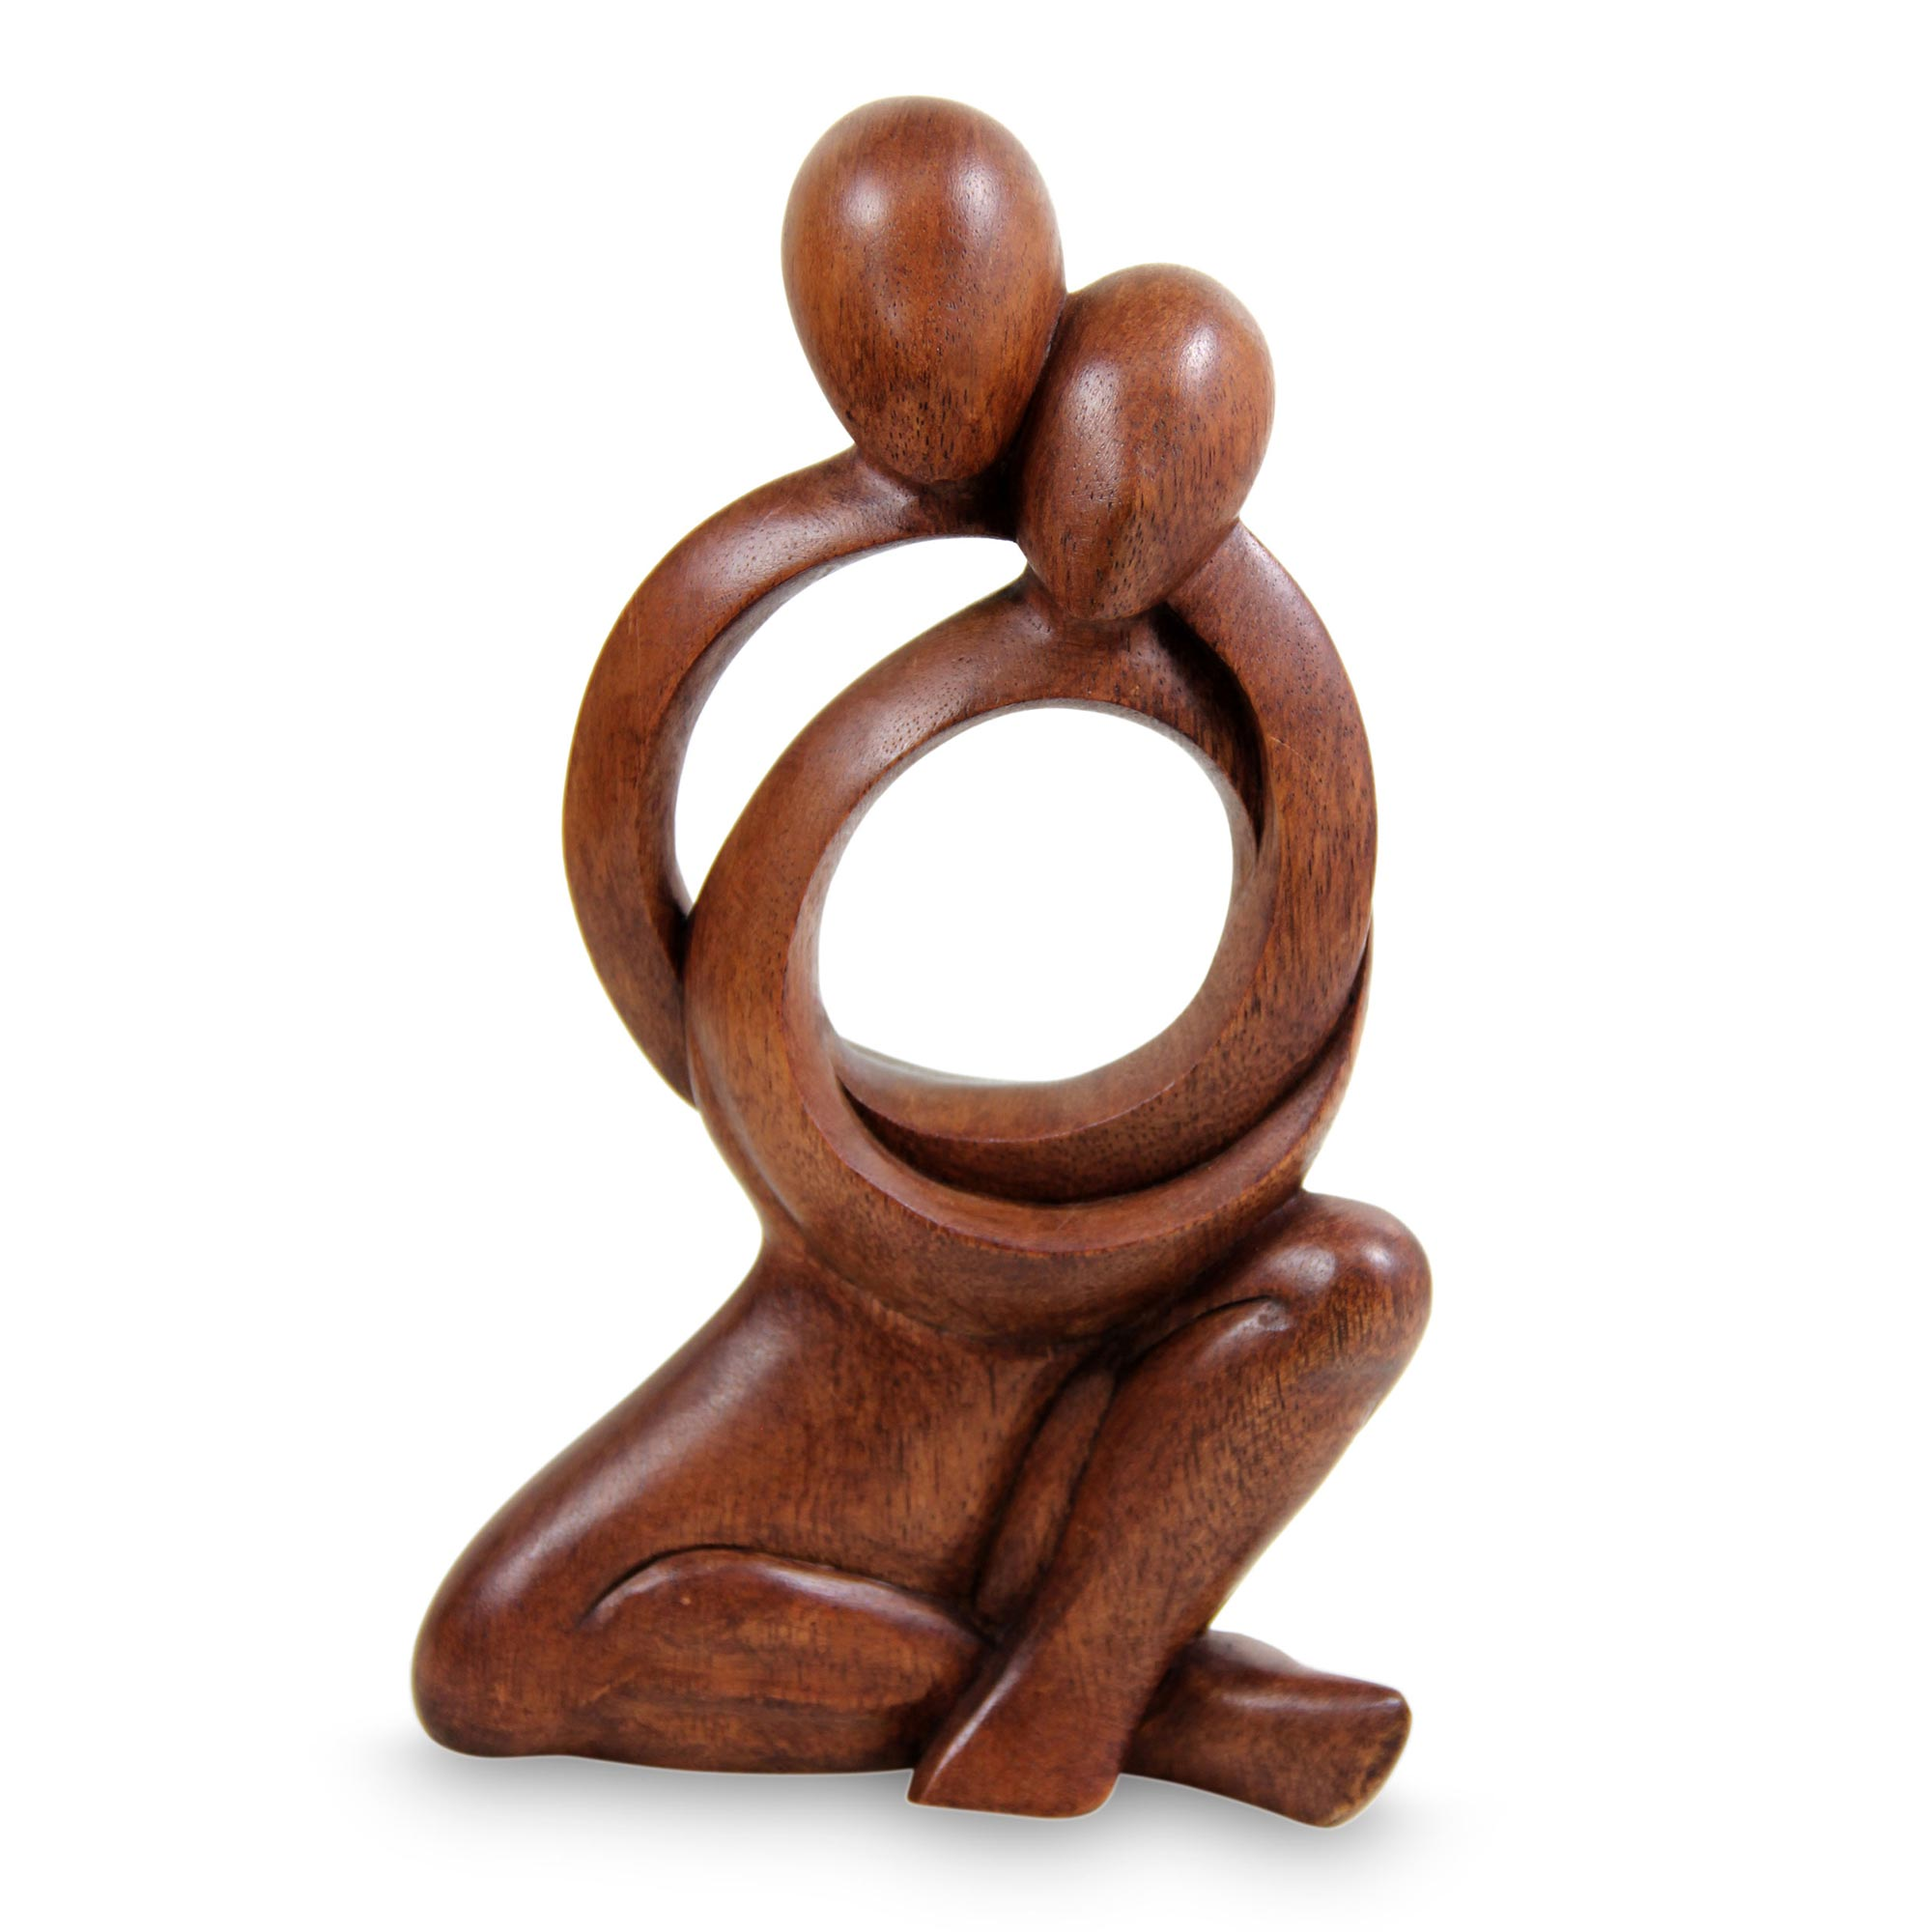 Unicef uk market abstract lovers sculpture together